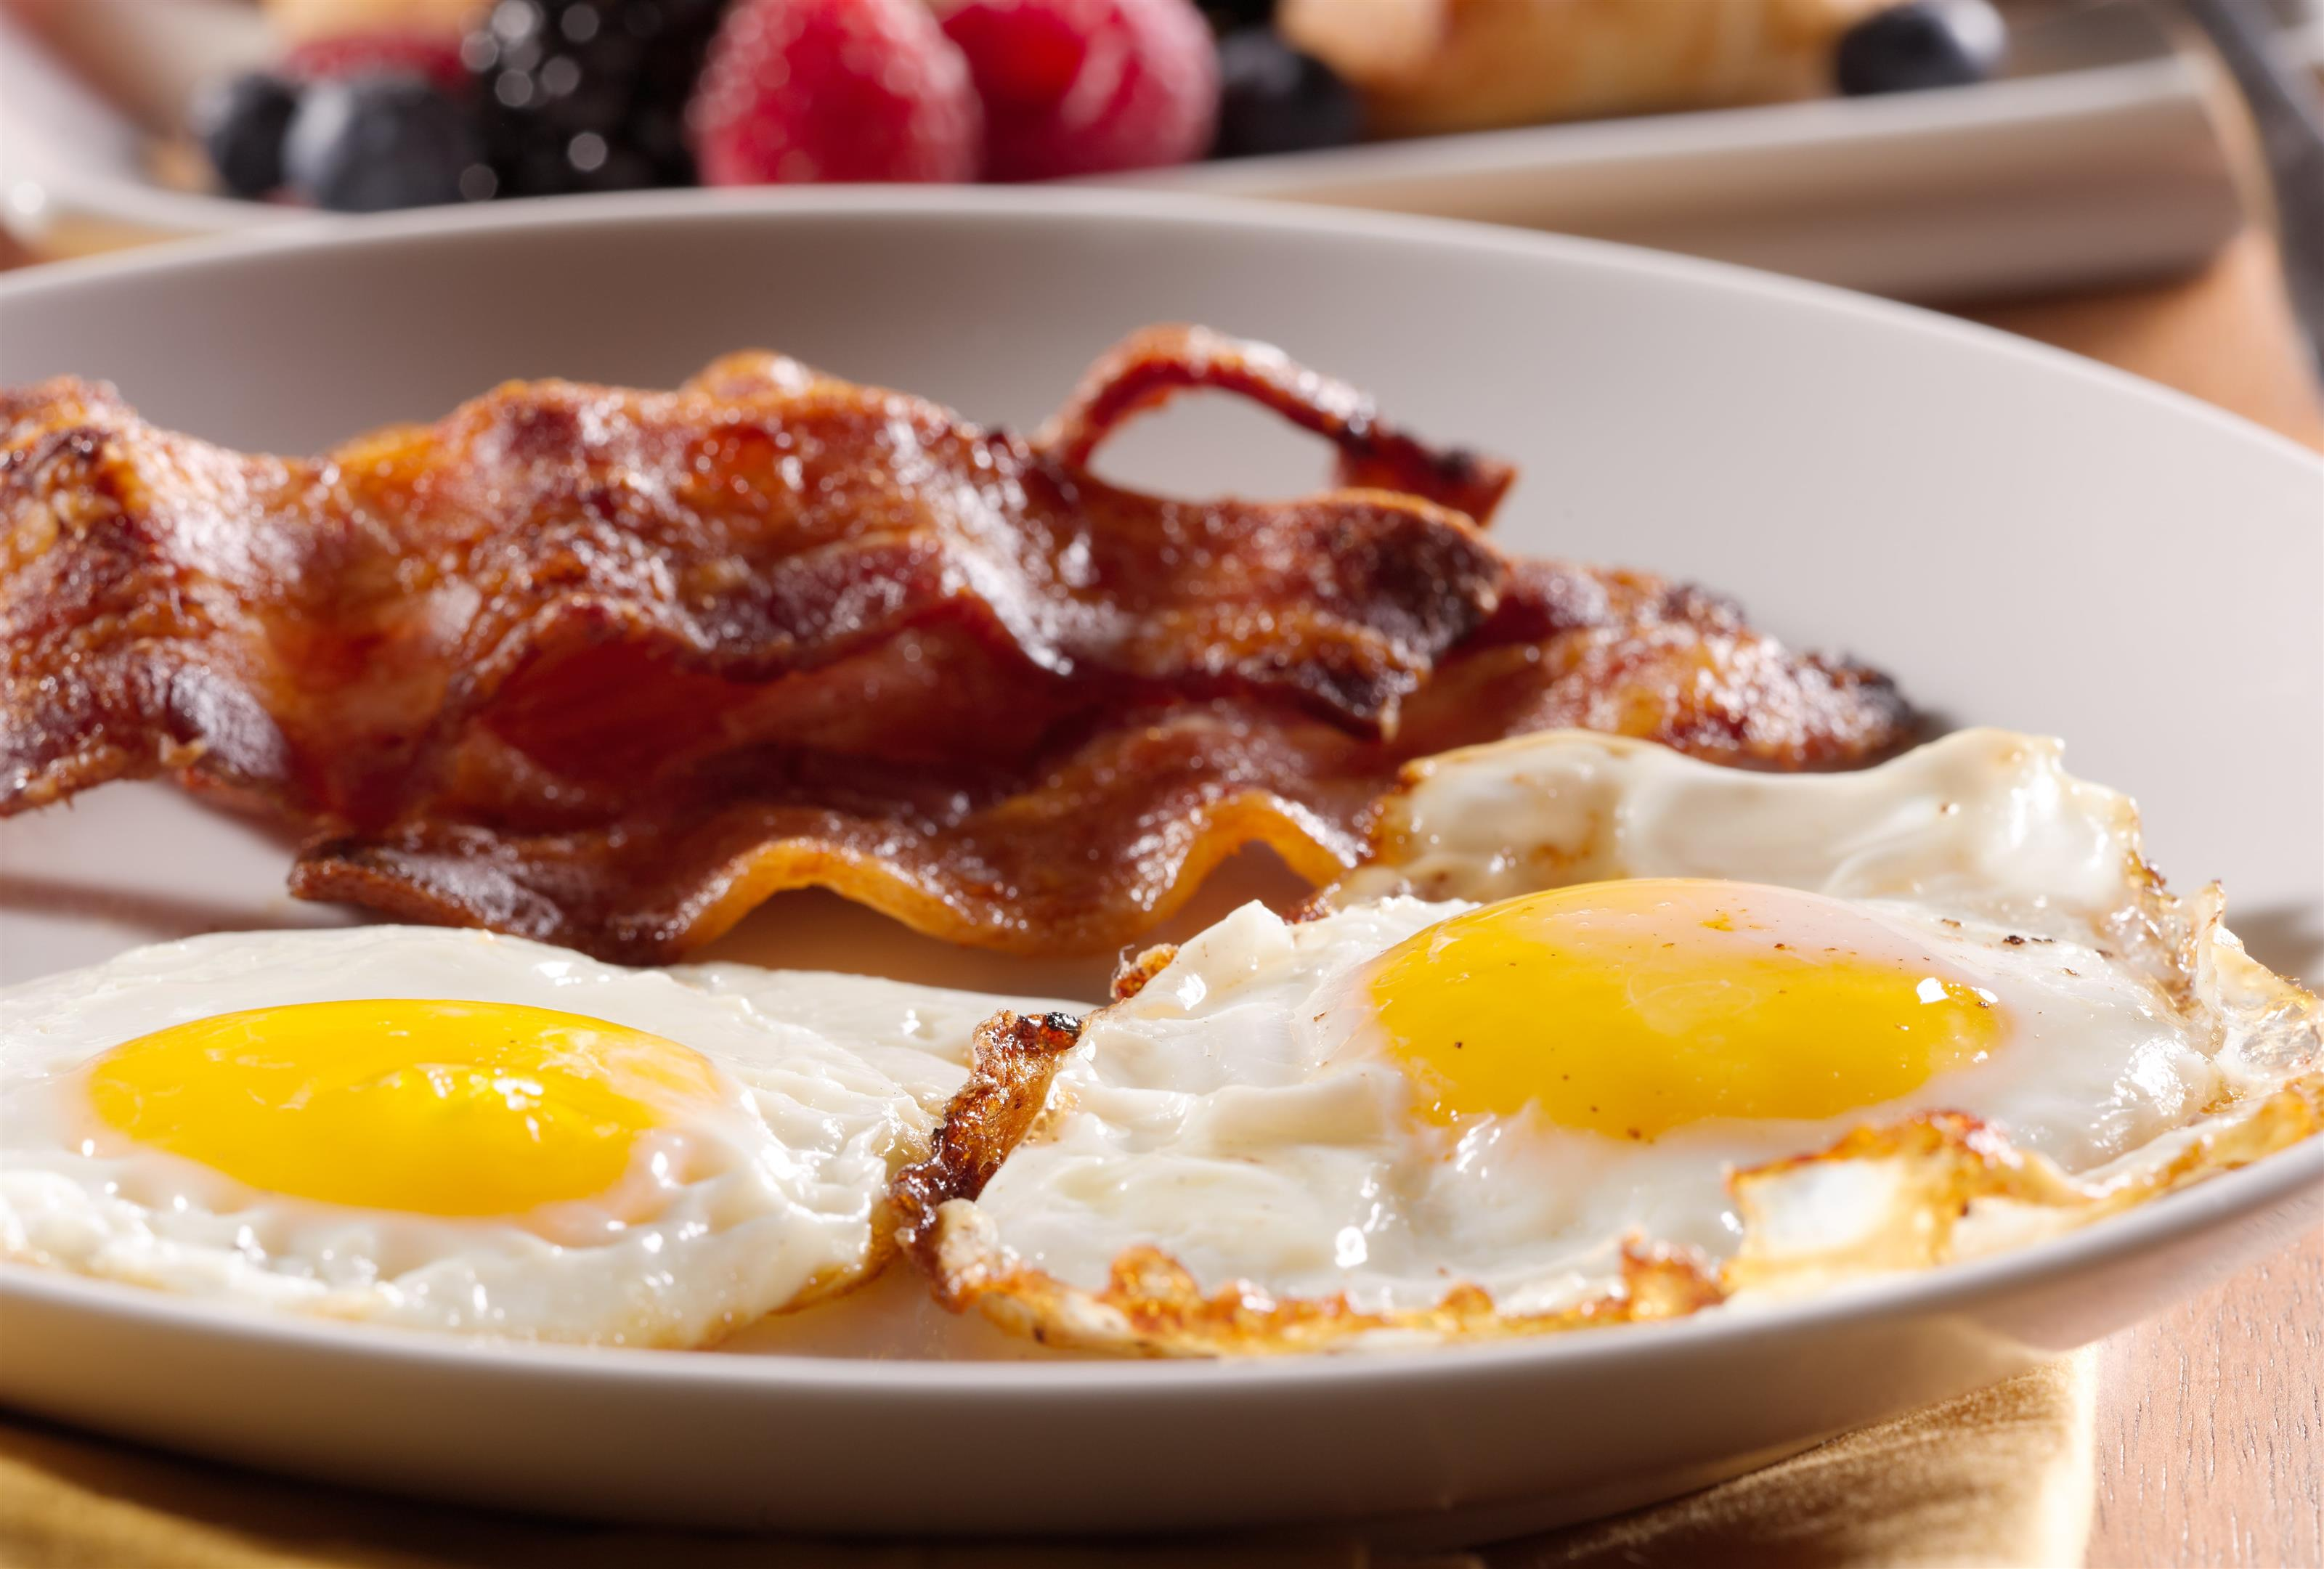 Bacon and over easy eggs